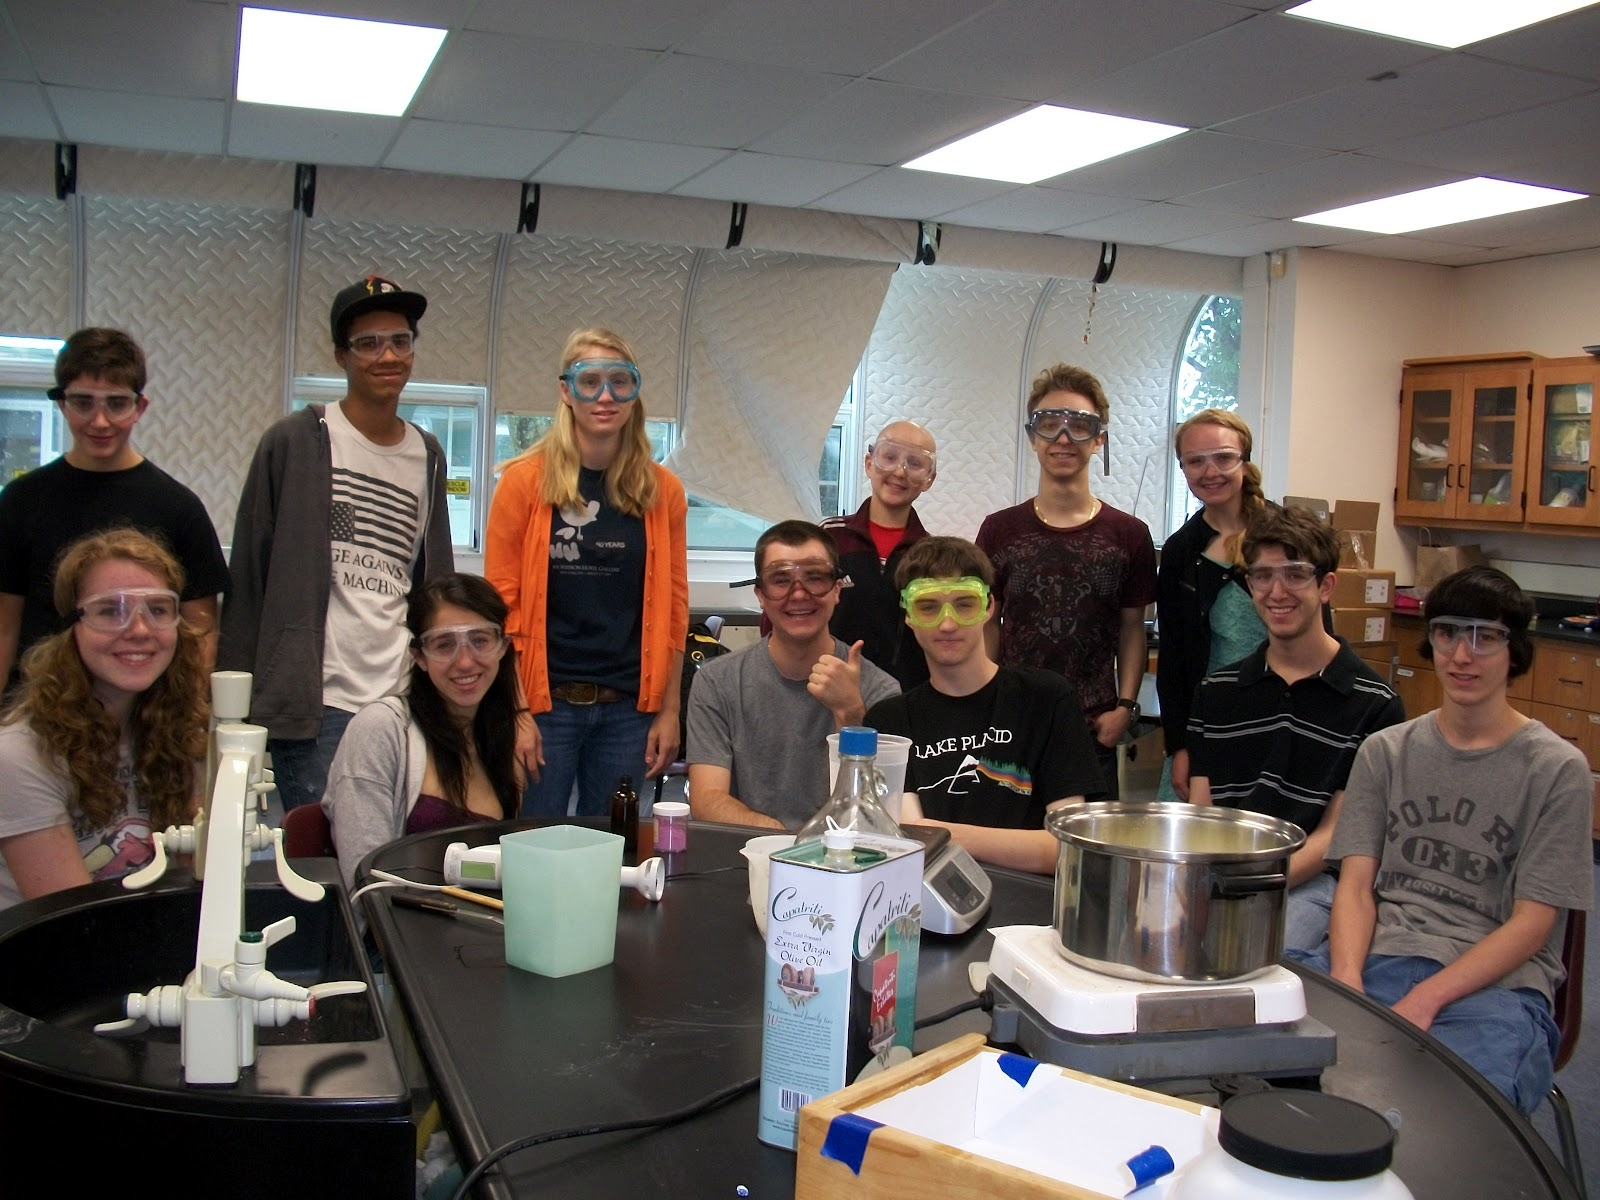 Teaching soapmaking to Chemistry students